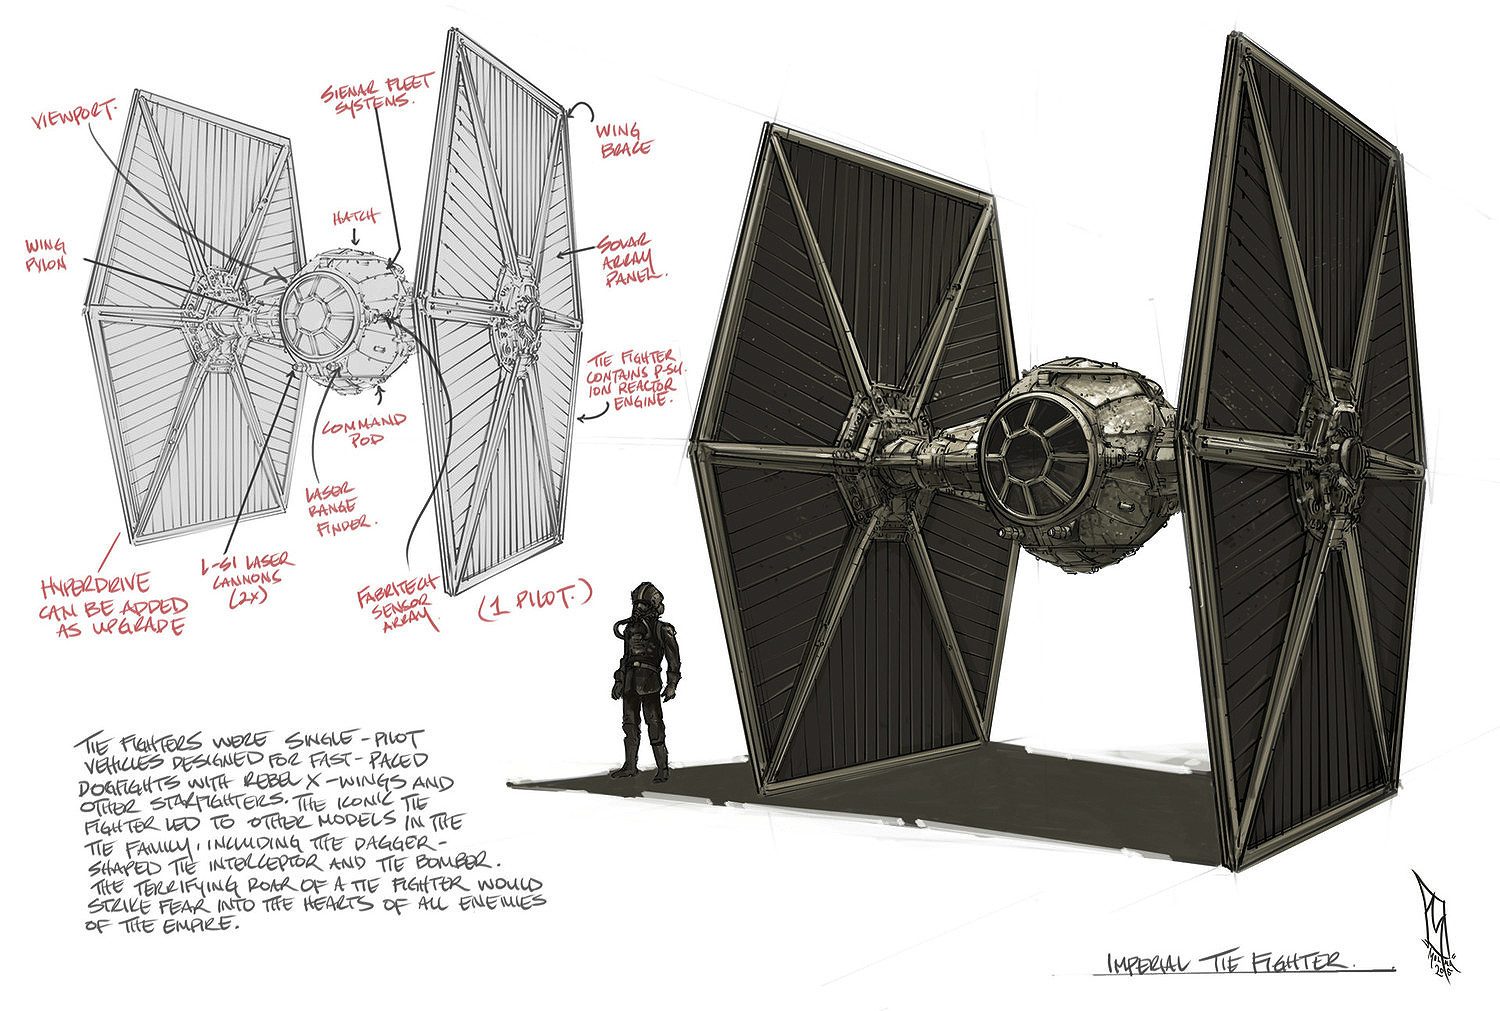 Shane molina tiefighter web